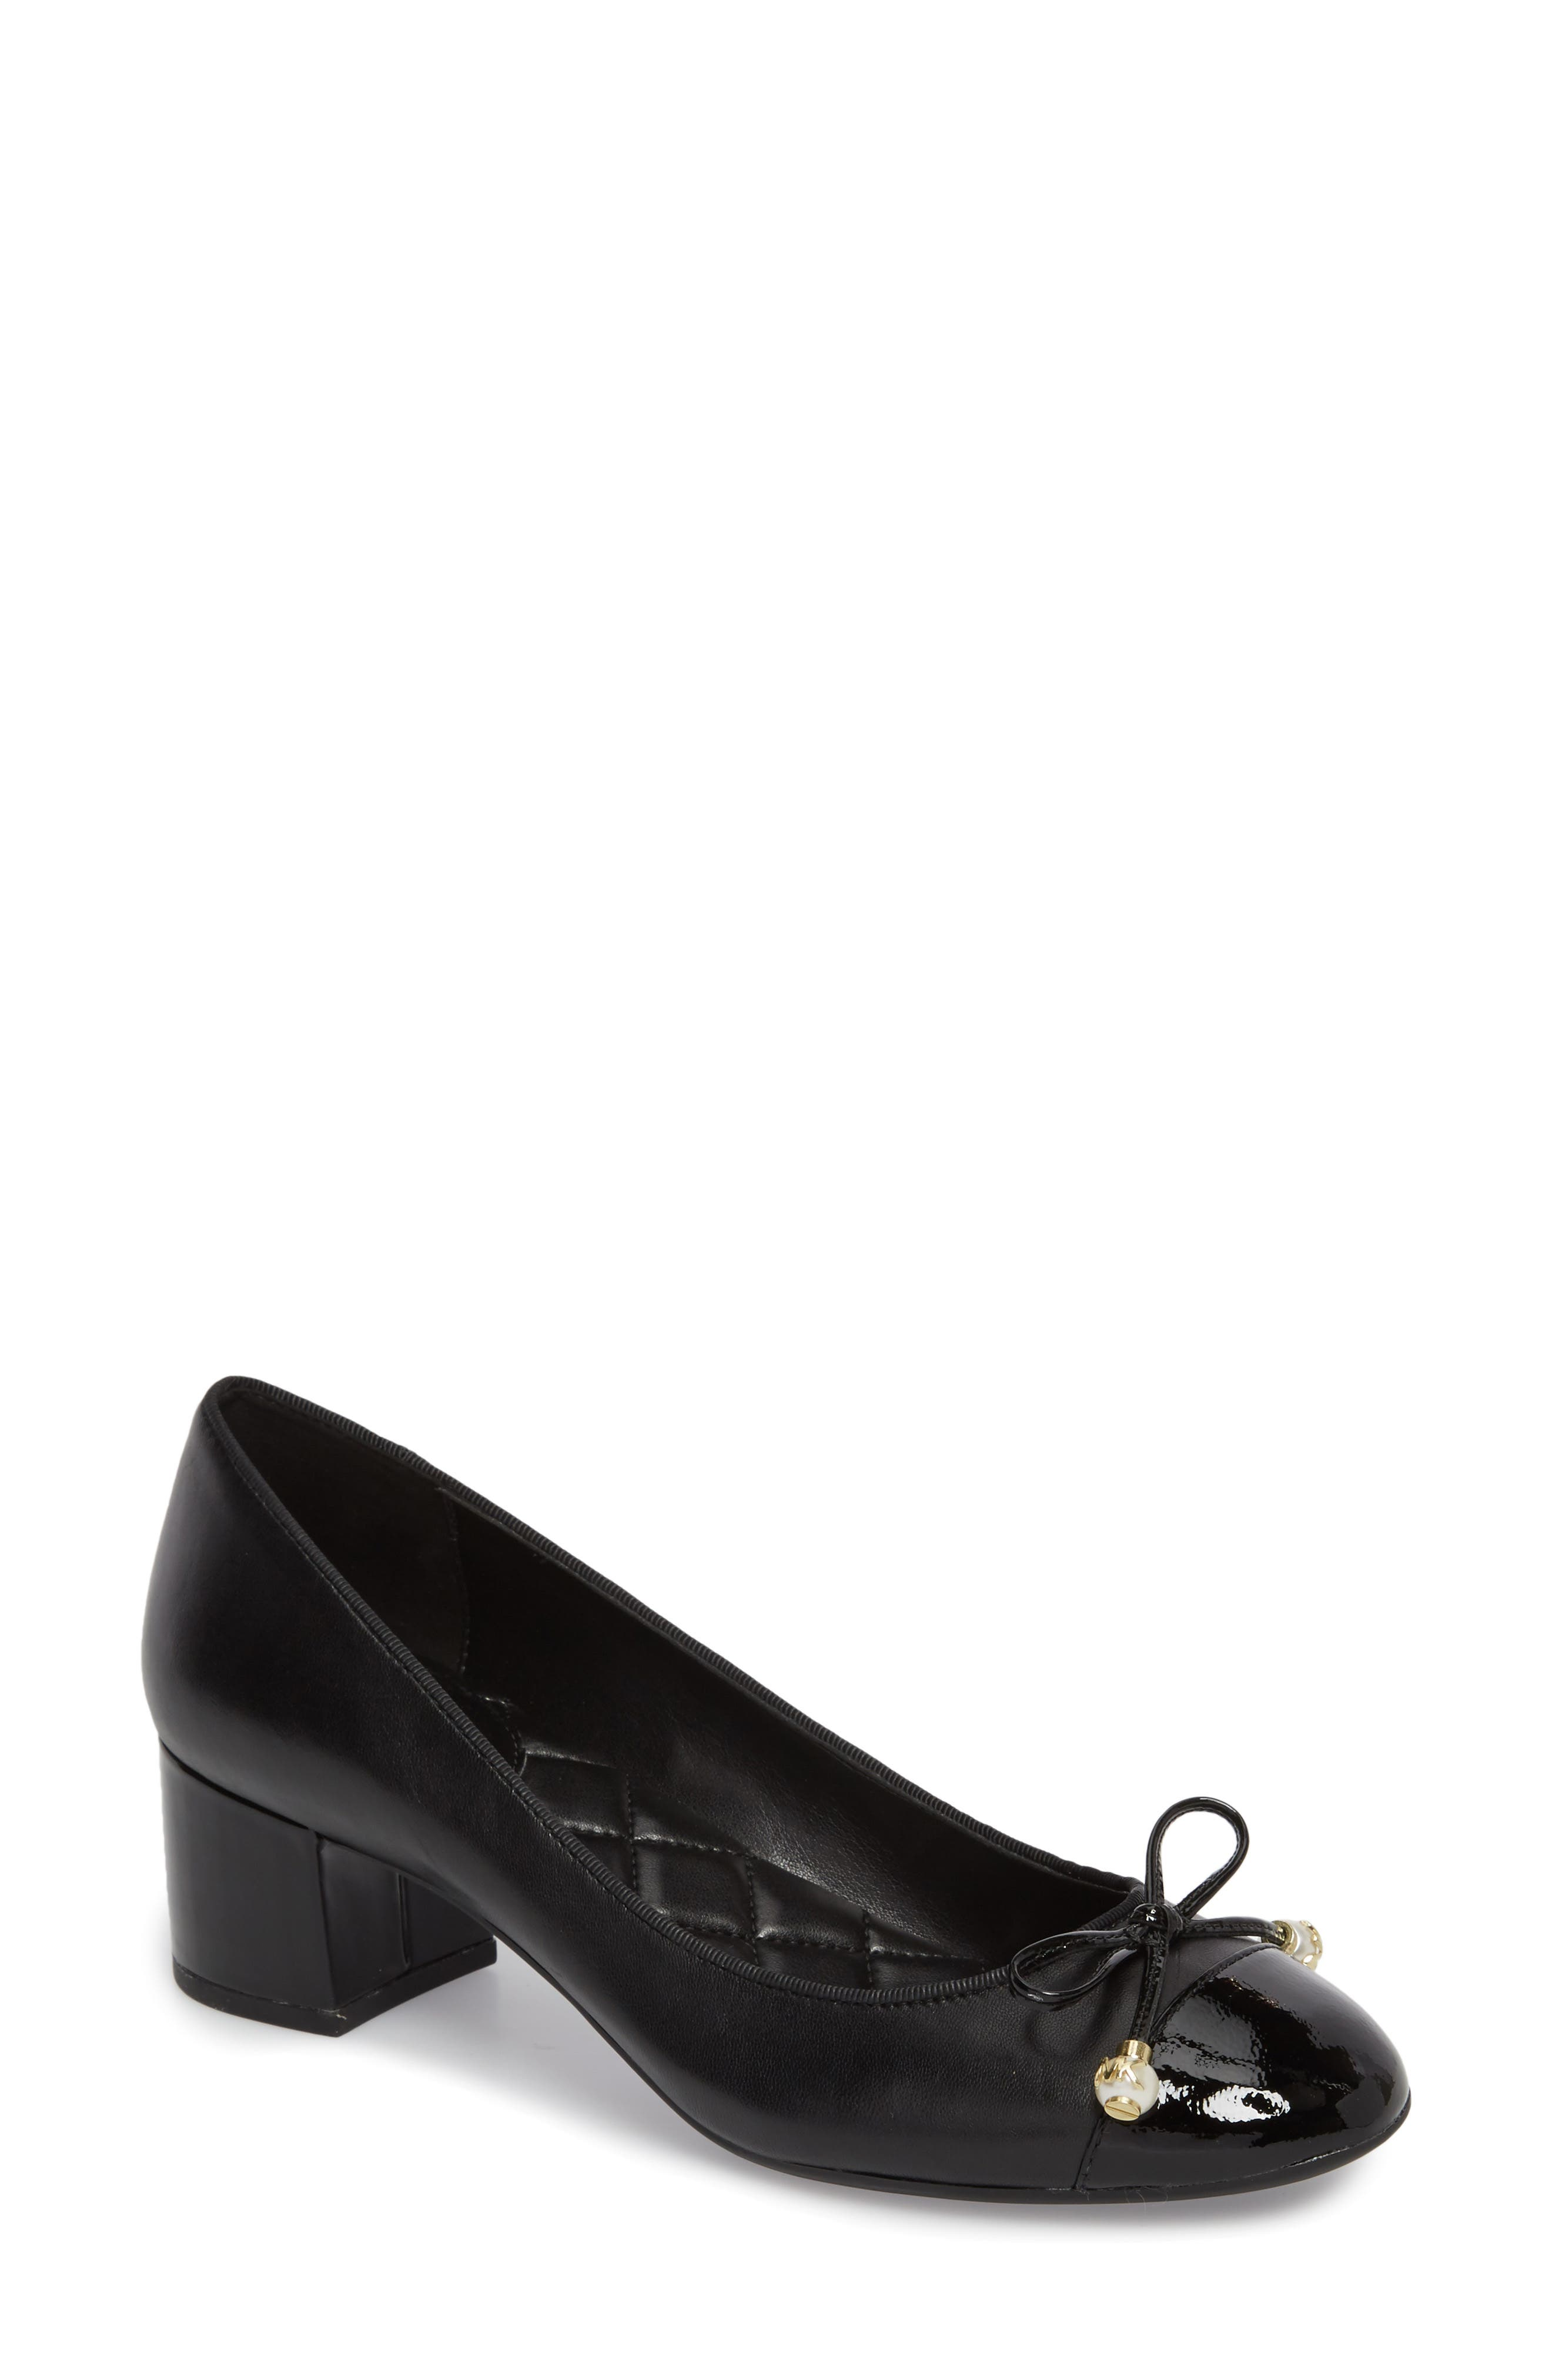 Gia Pump,                         Main,                         color, Black Nappa Leather